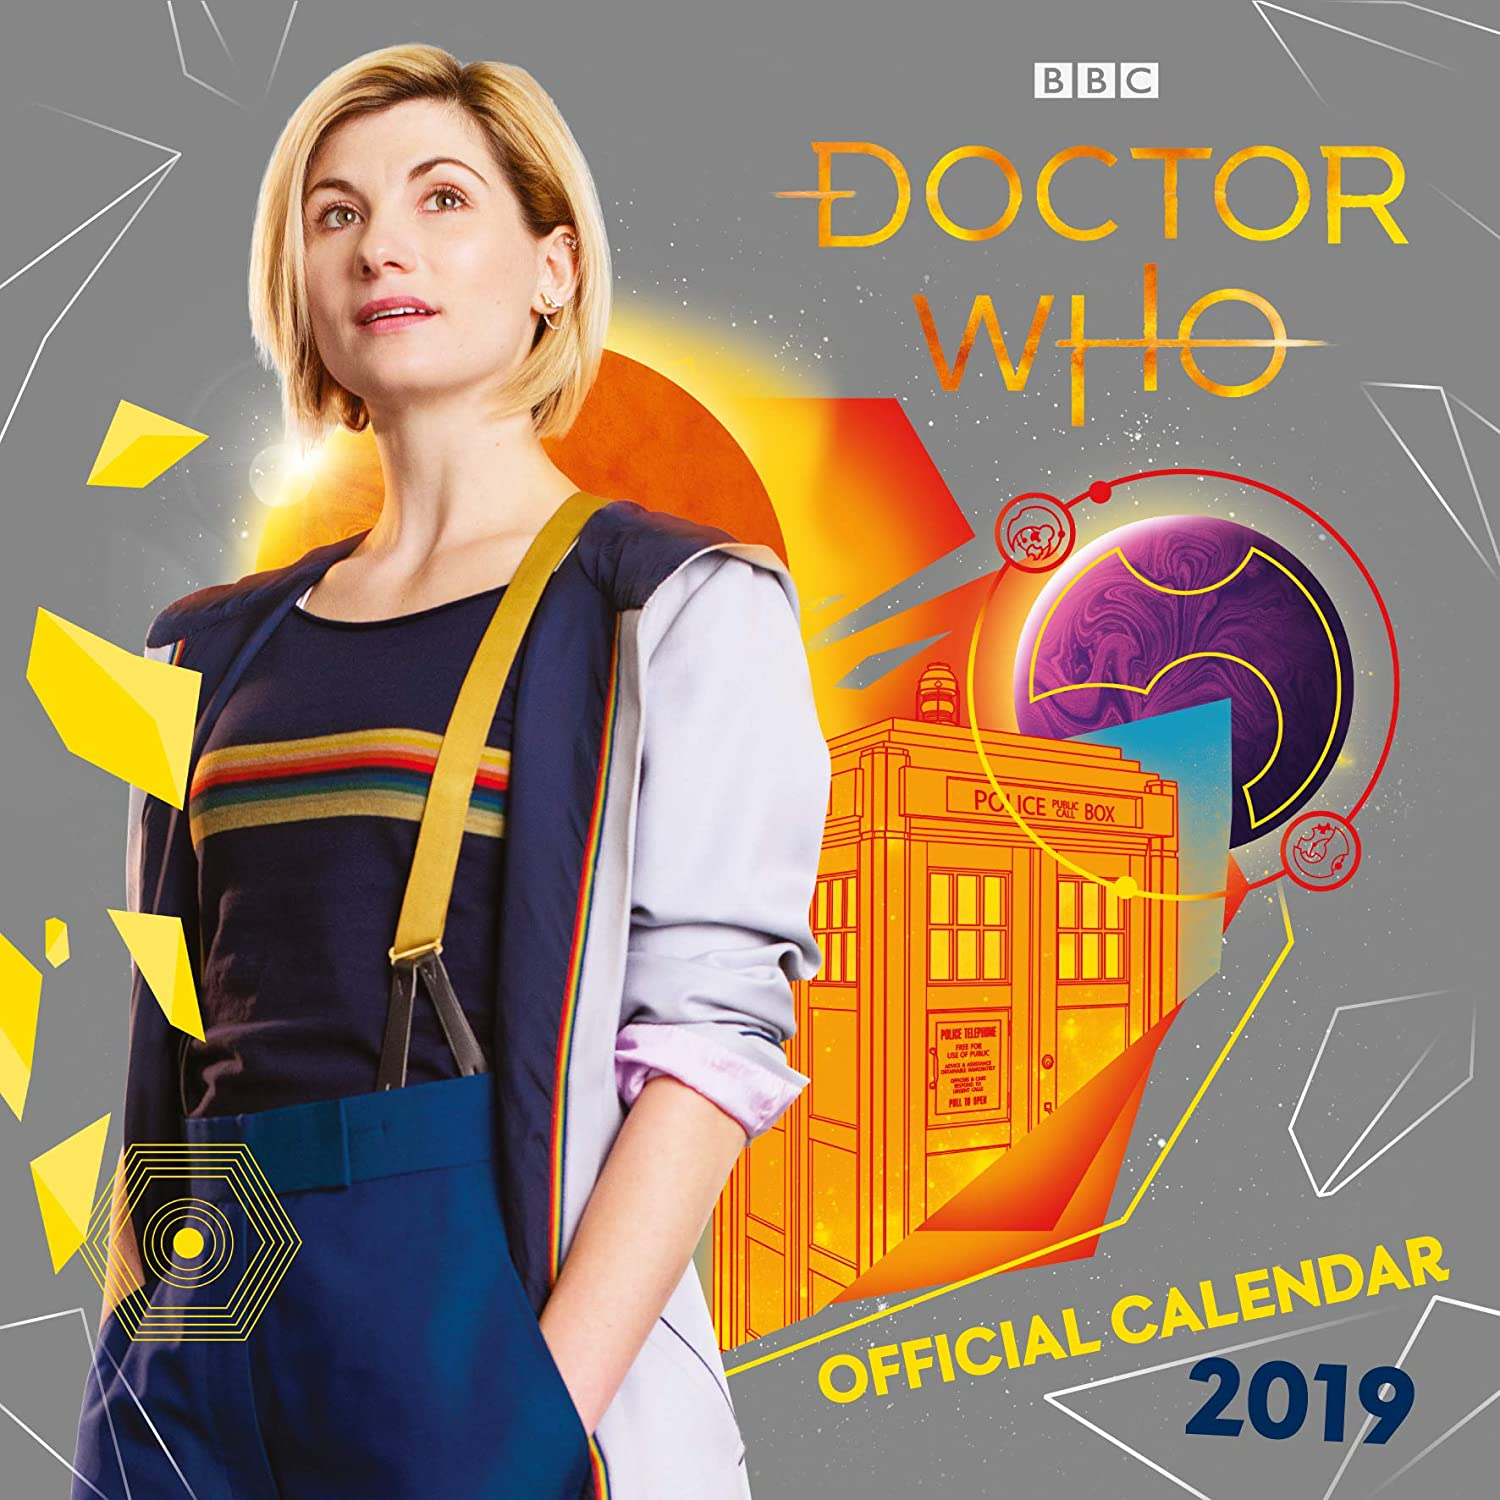 Doctor Who Official 2019 Calendar - Square Wall Calendar Format